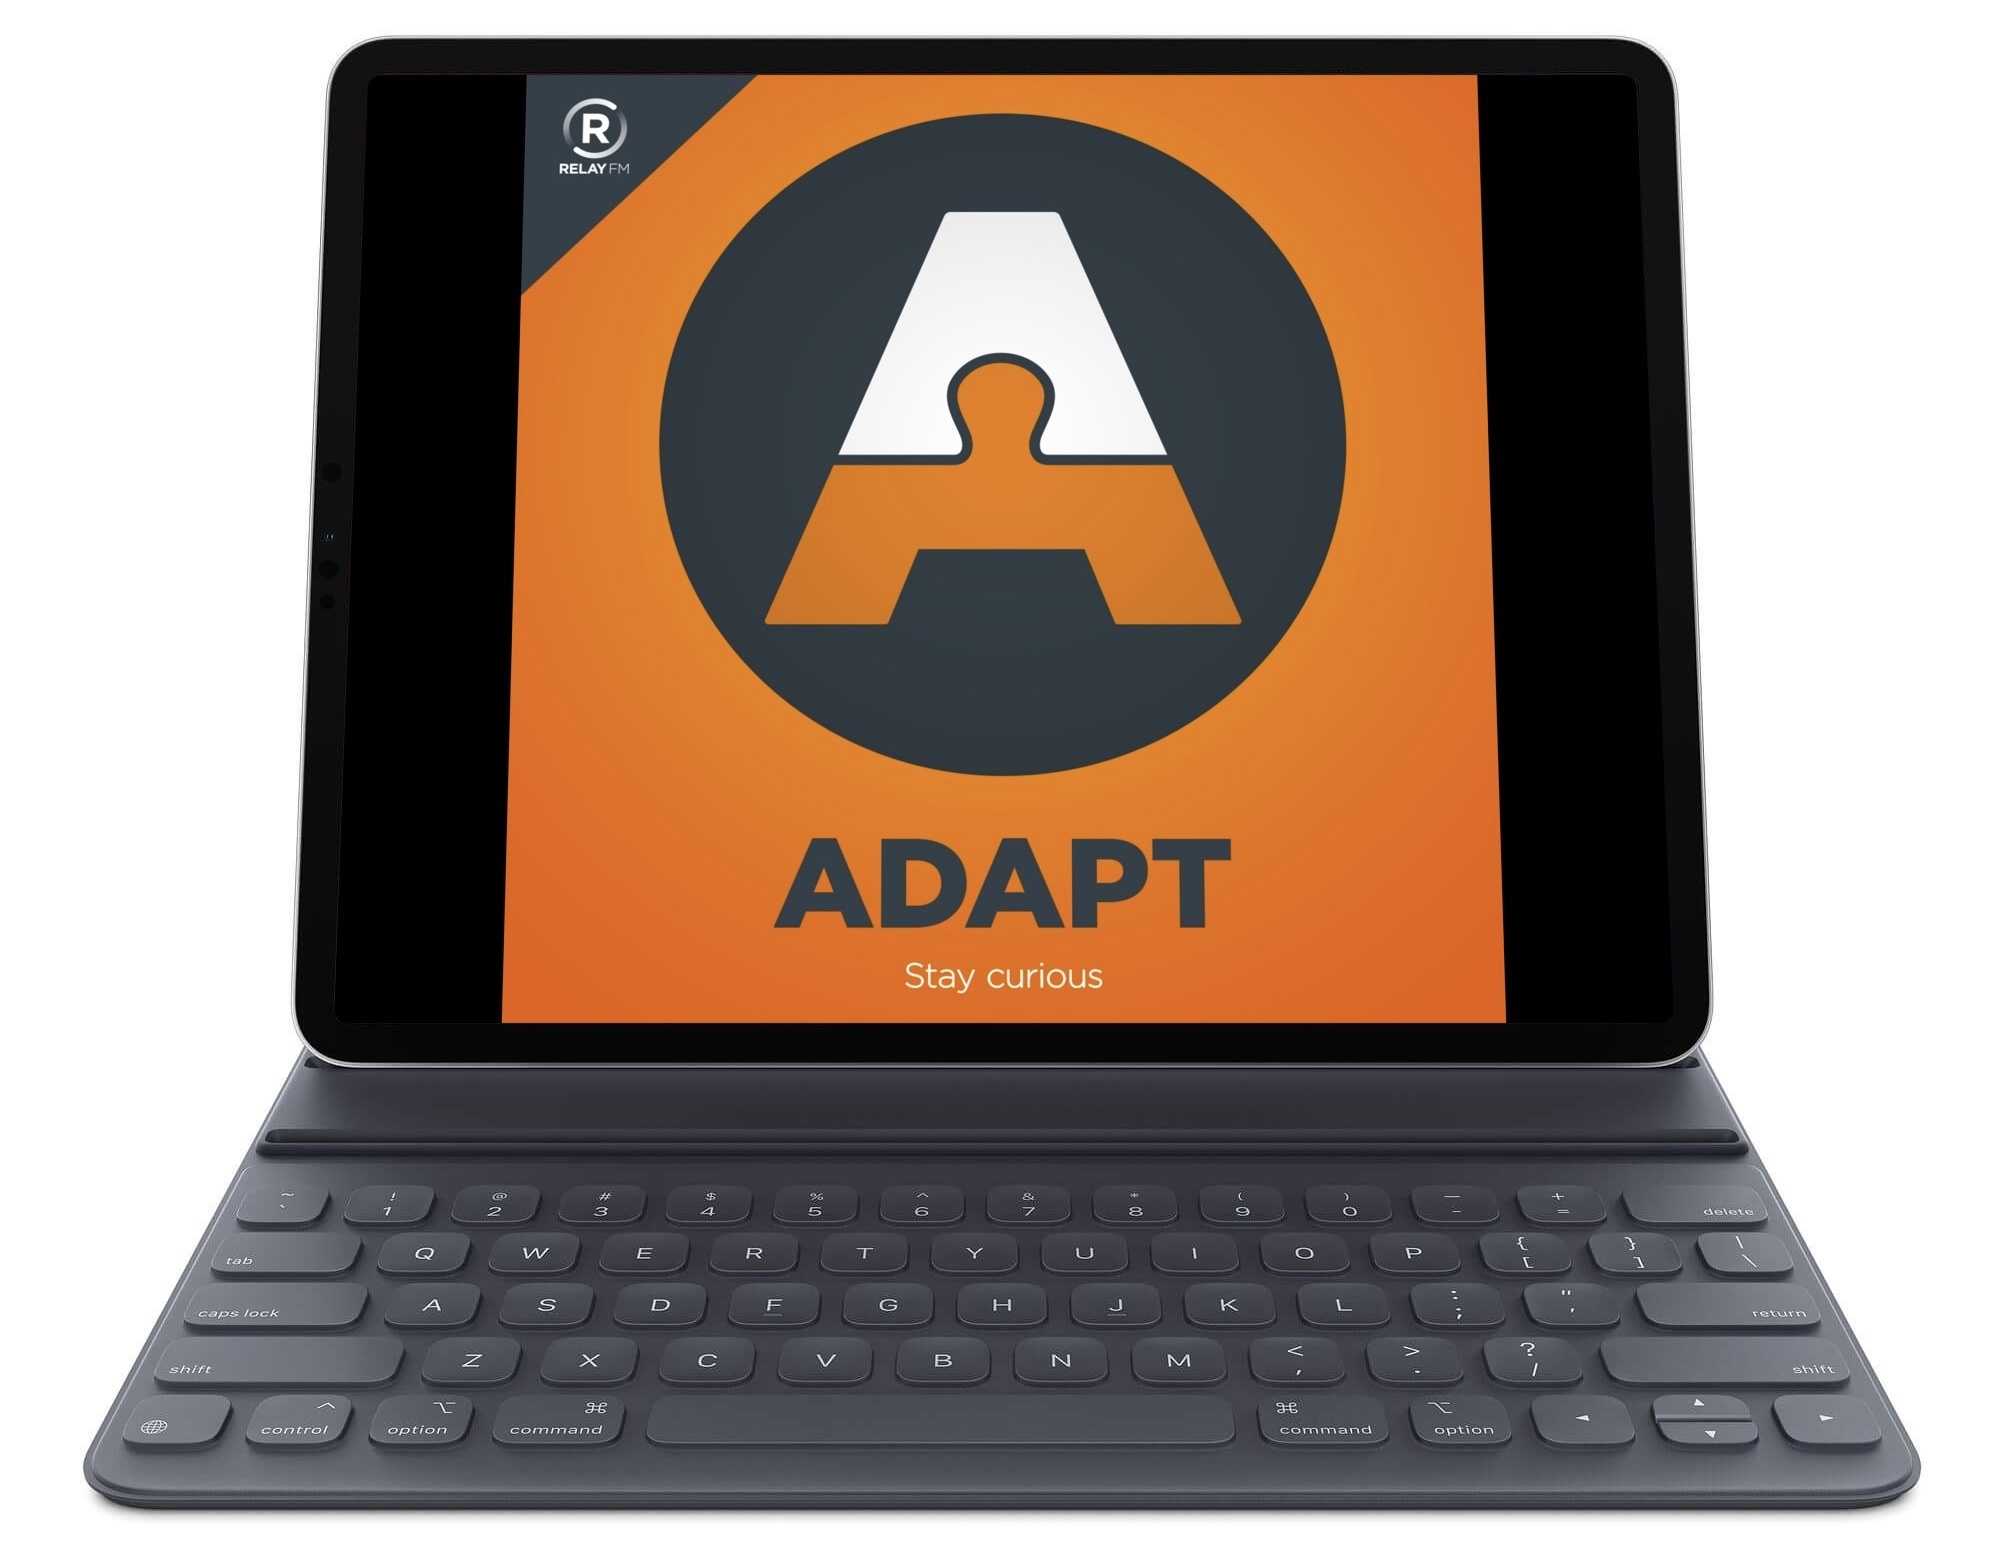 Introducing Adapt, a New iPad Podcast on Relay FM